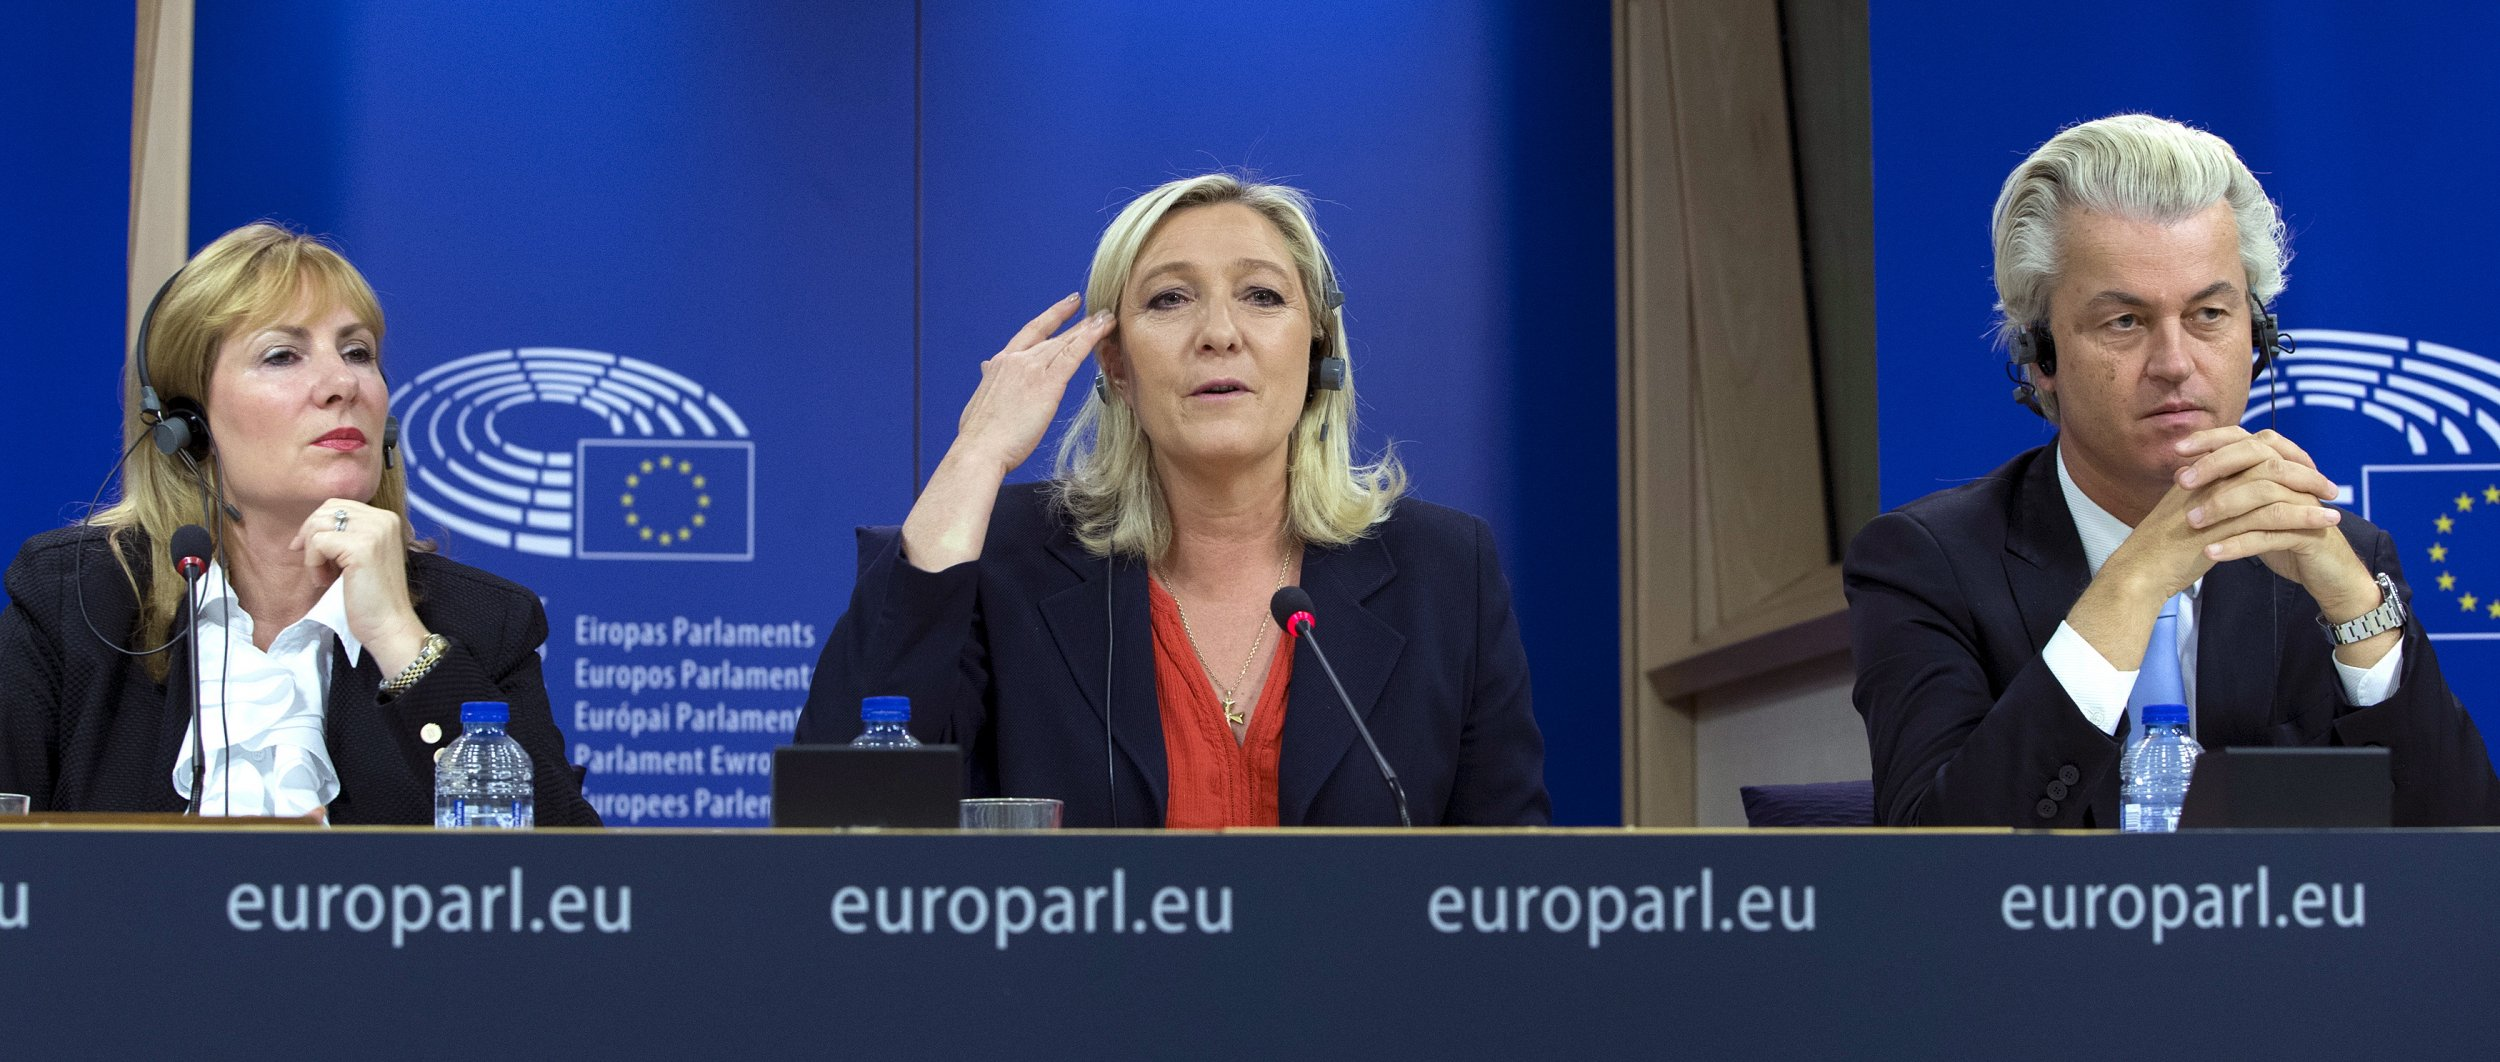 Atkinson, Le Pen and Wilders